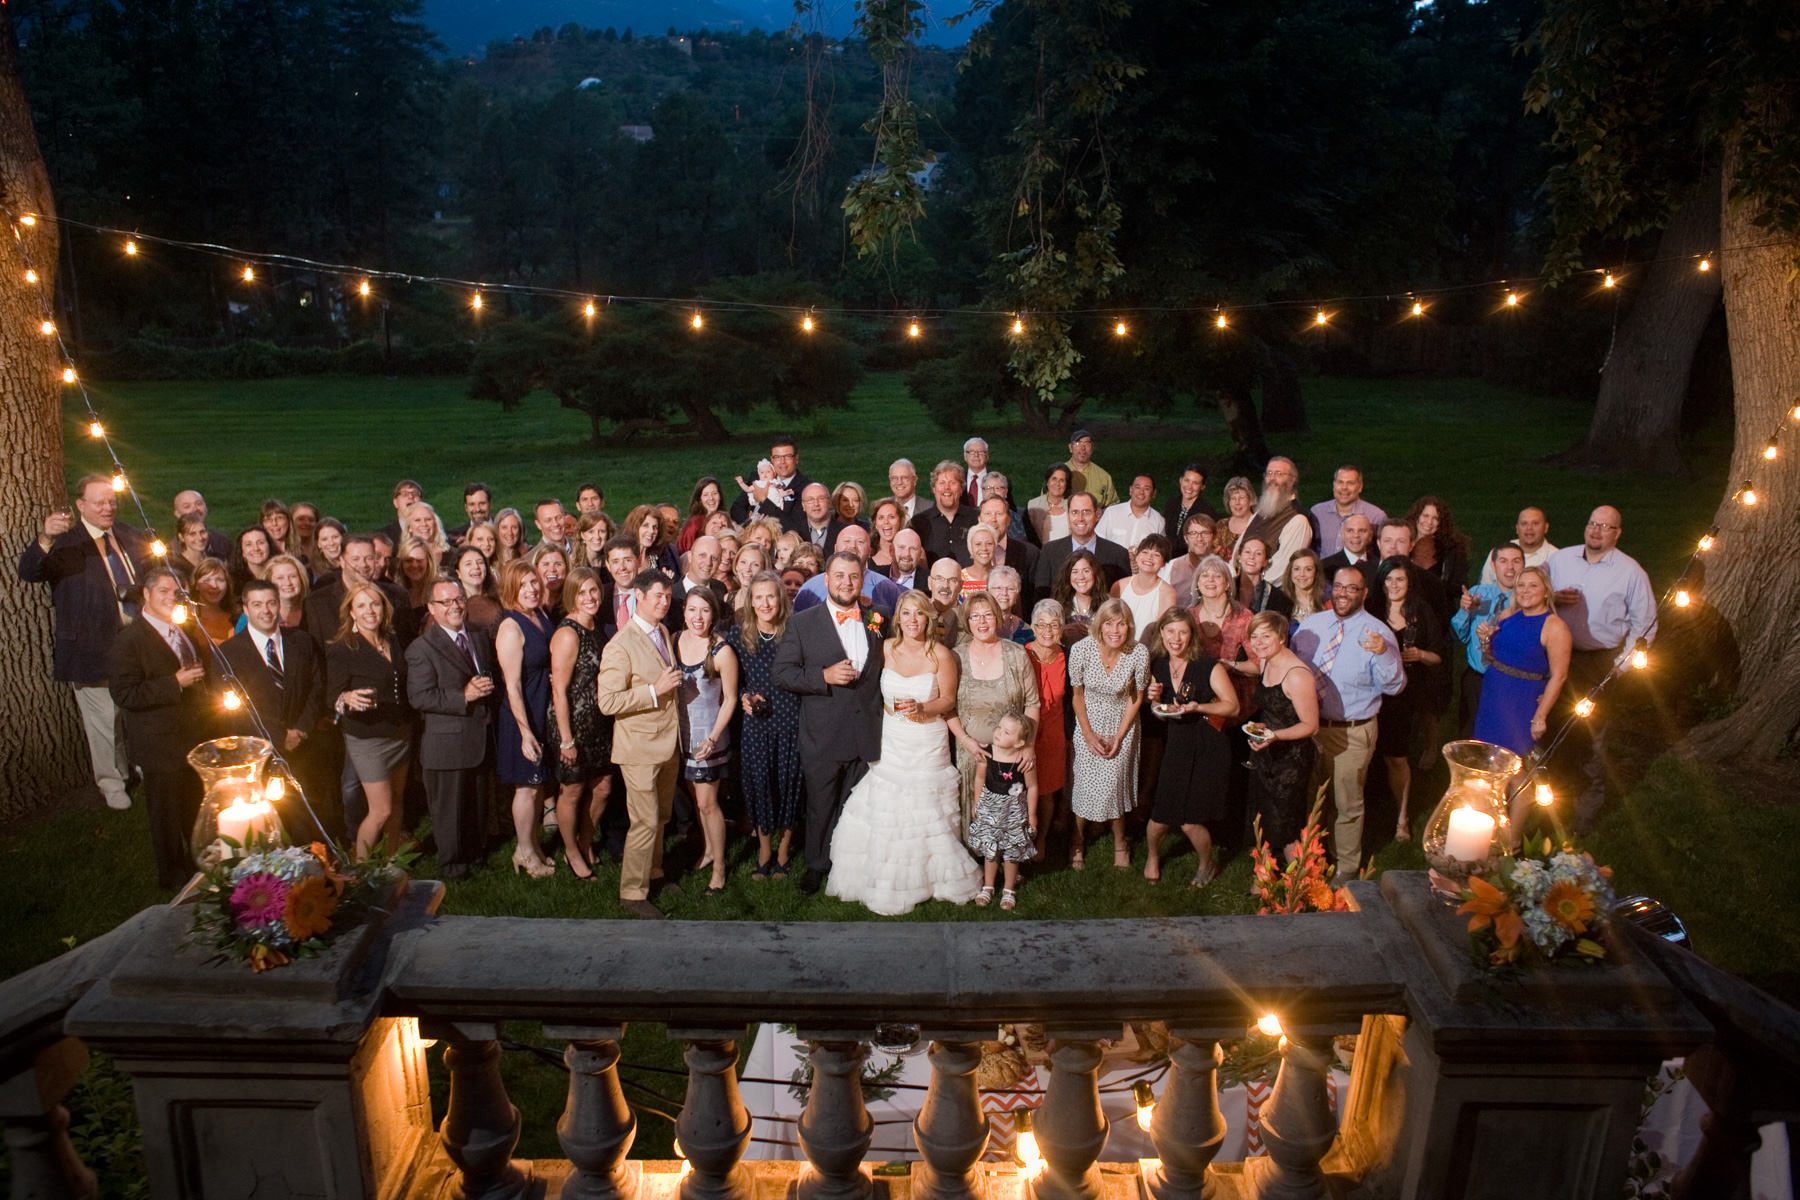 Group photograph of all wedding guests at Stewart House